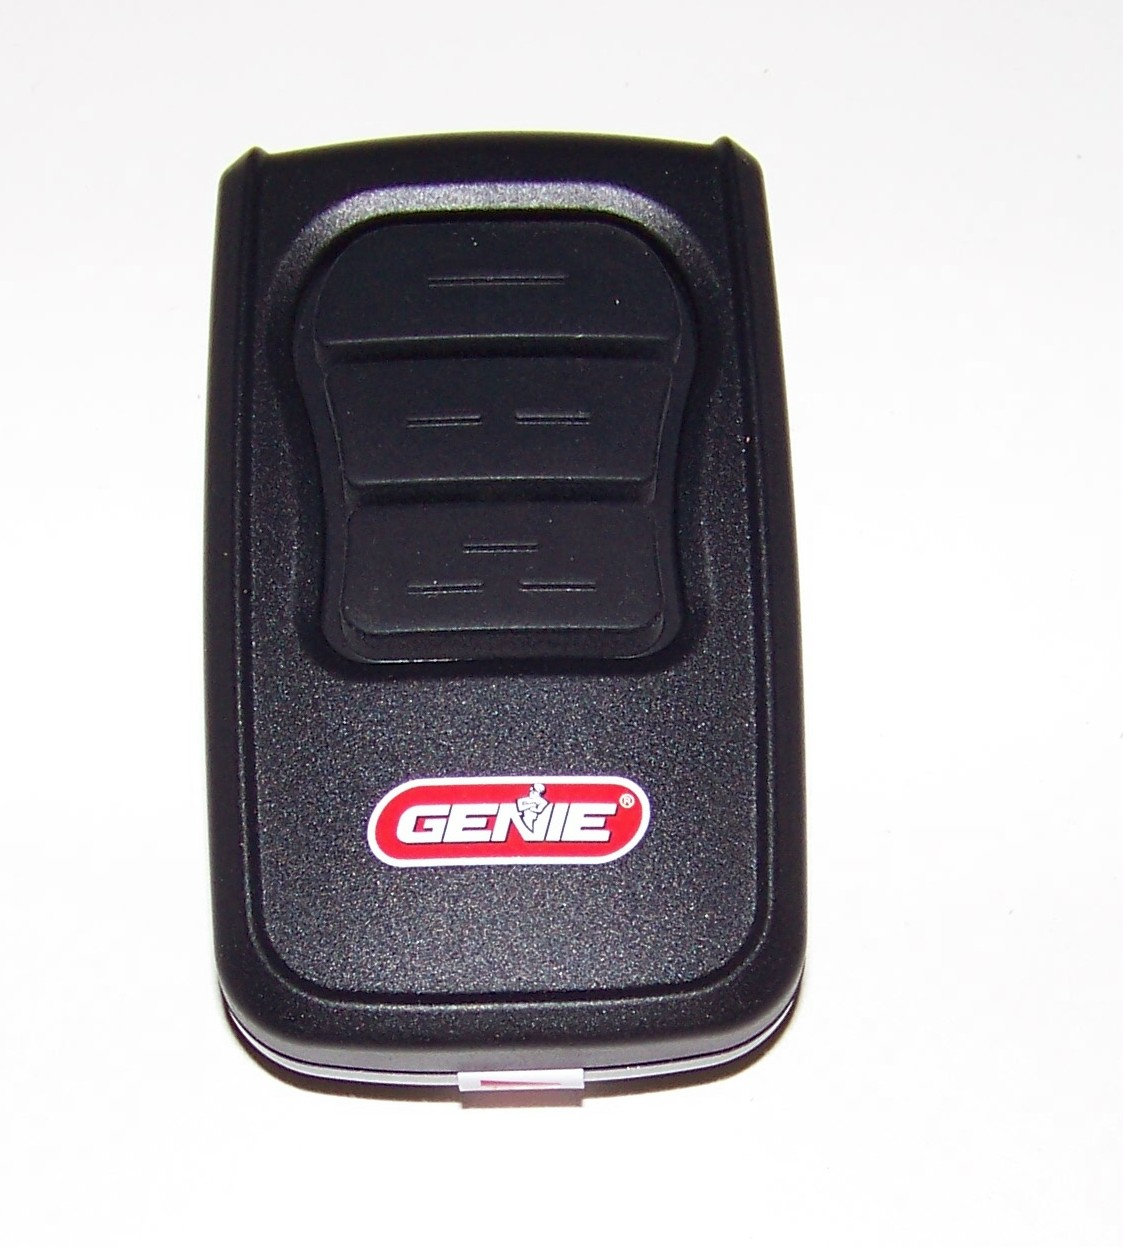 Genie Intellicode Programming >> How To Program Genie Garage Door Opener Remotes